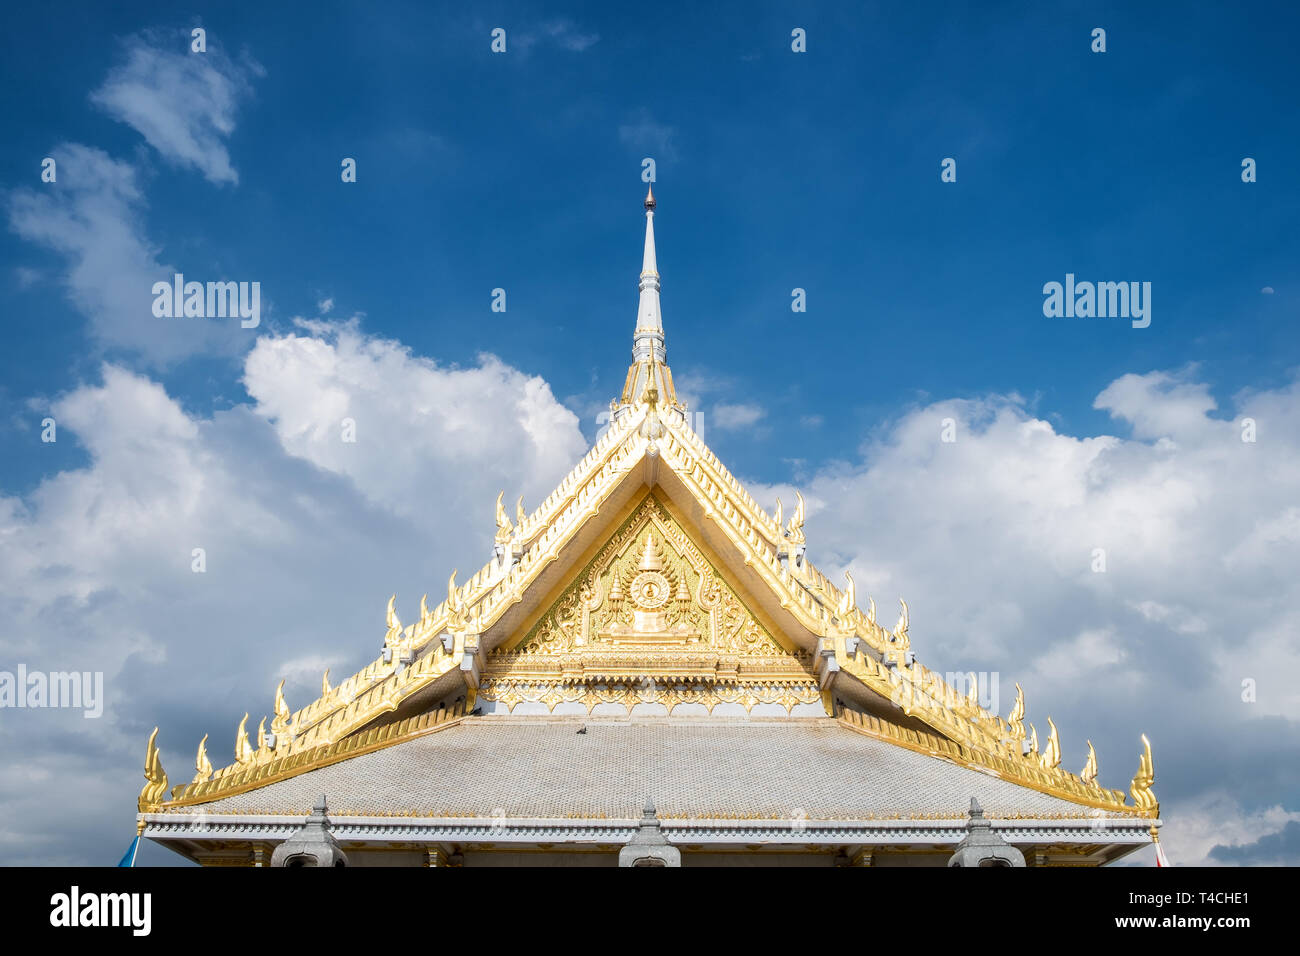 Architectural magnificent church roof gable at wat sothon temple,chachoengsao,thailand - Stock Image